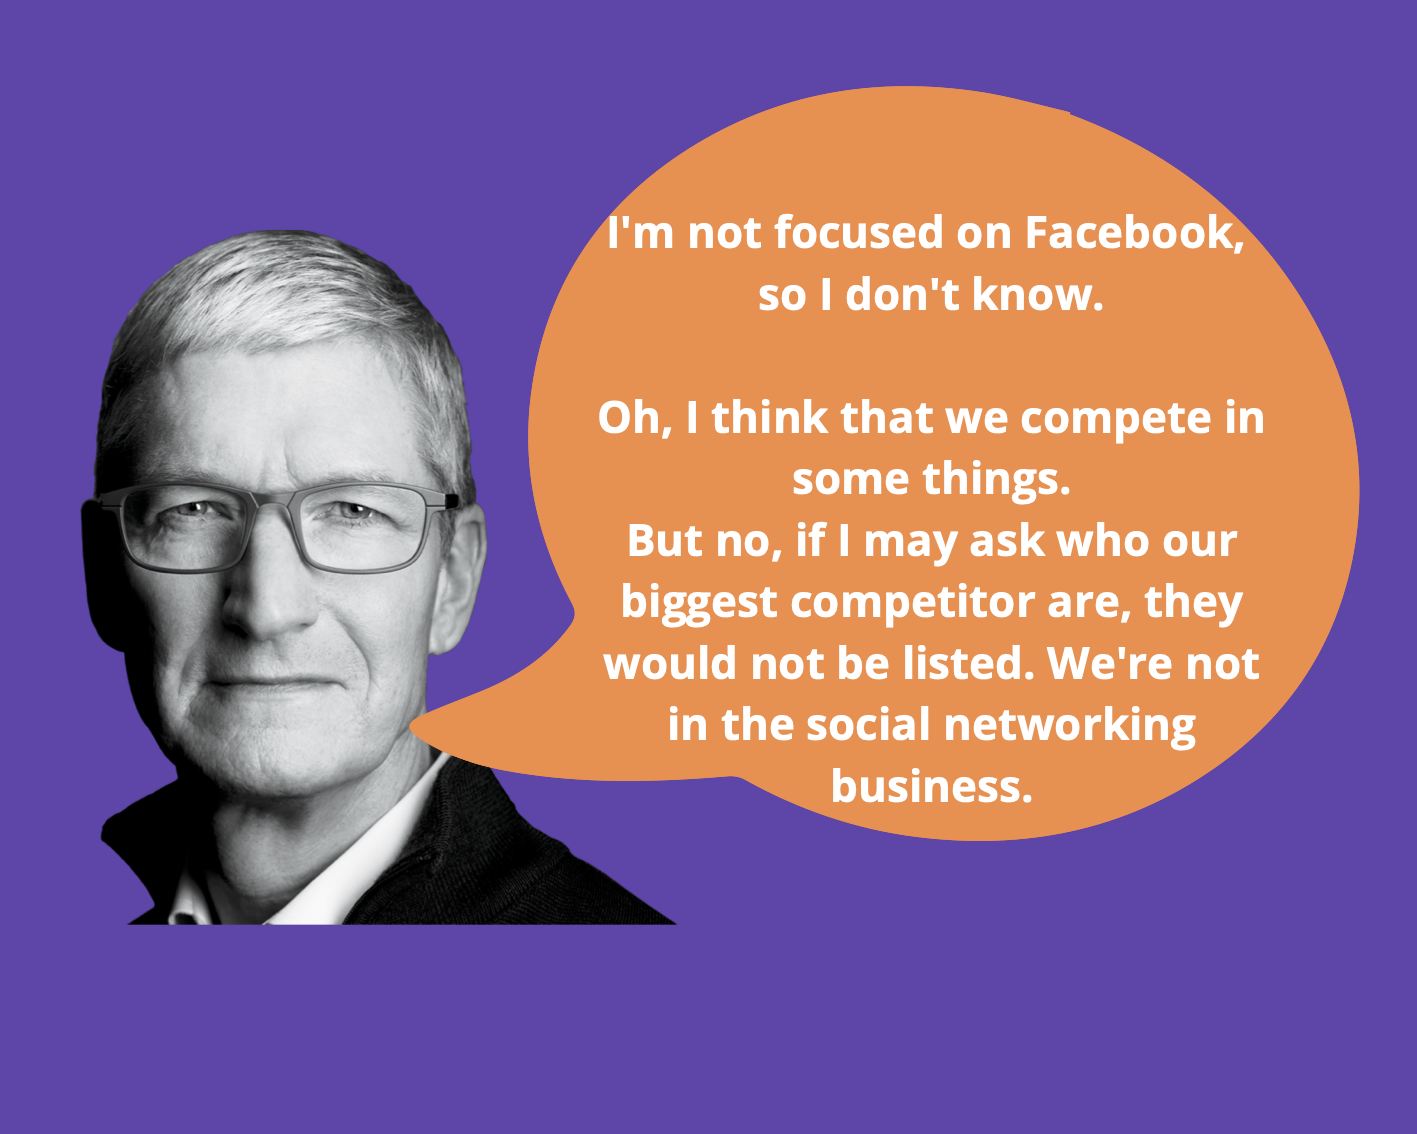 Tim Cook doesn't consider Facebook a competitor to Apple